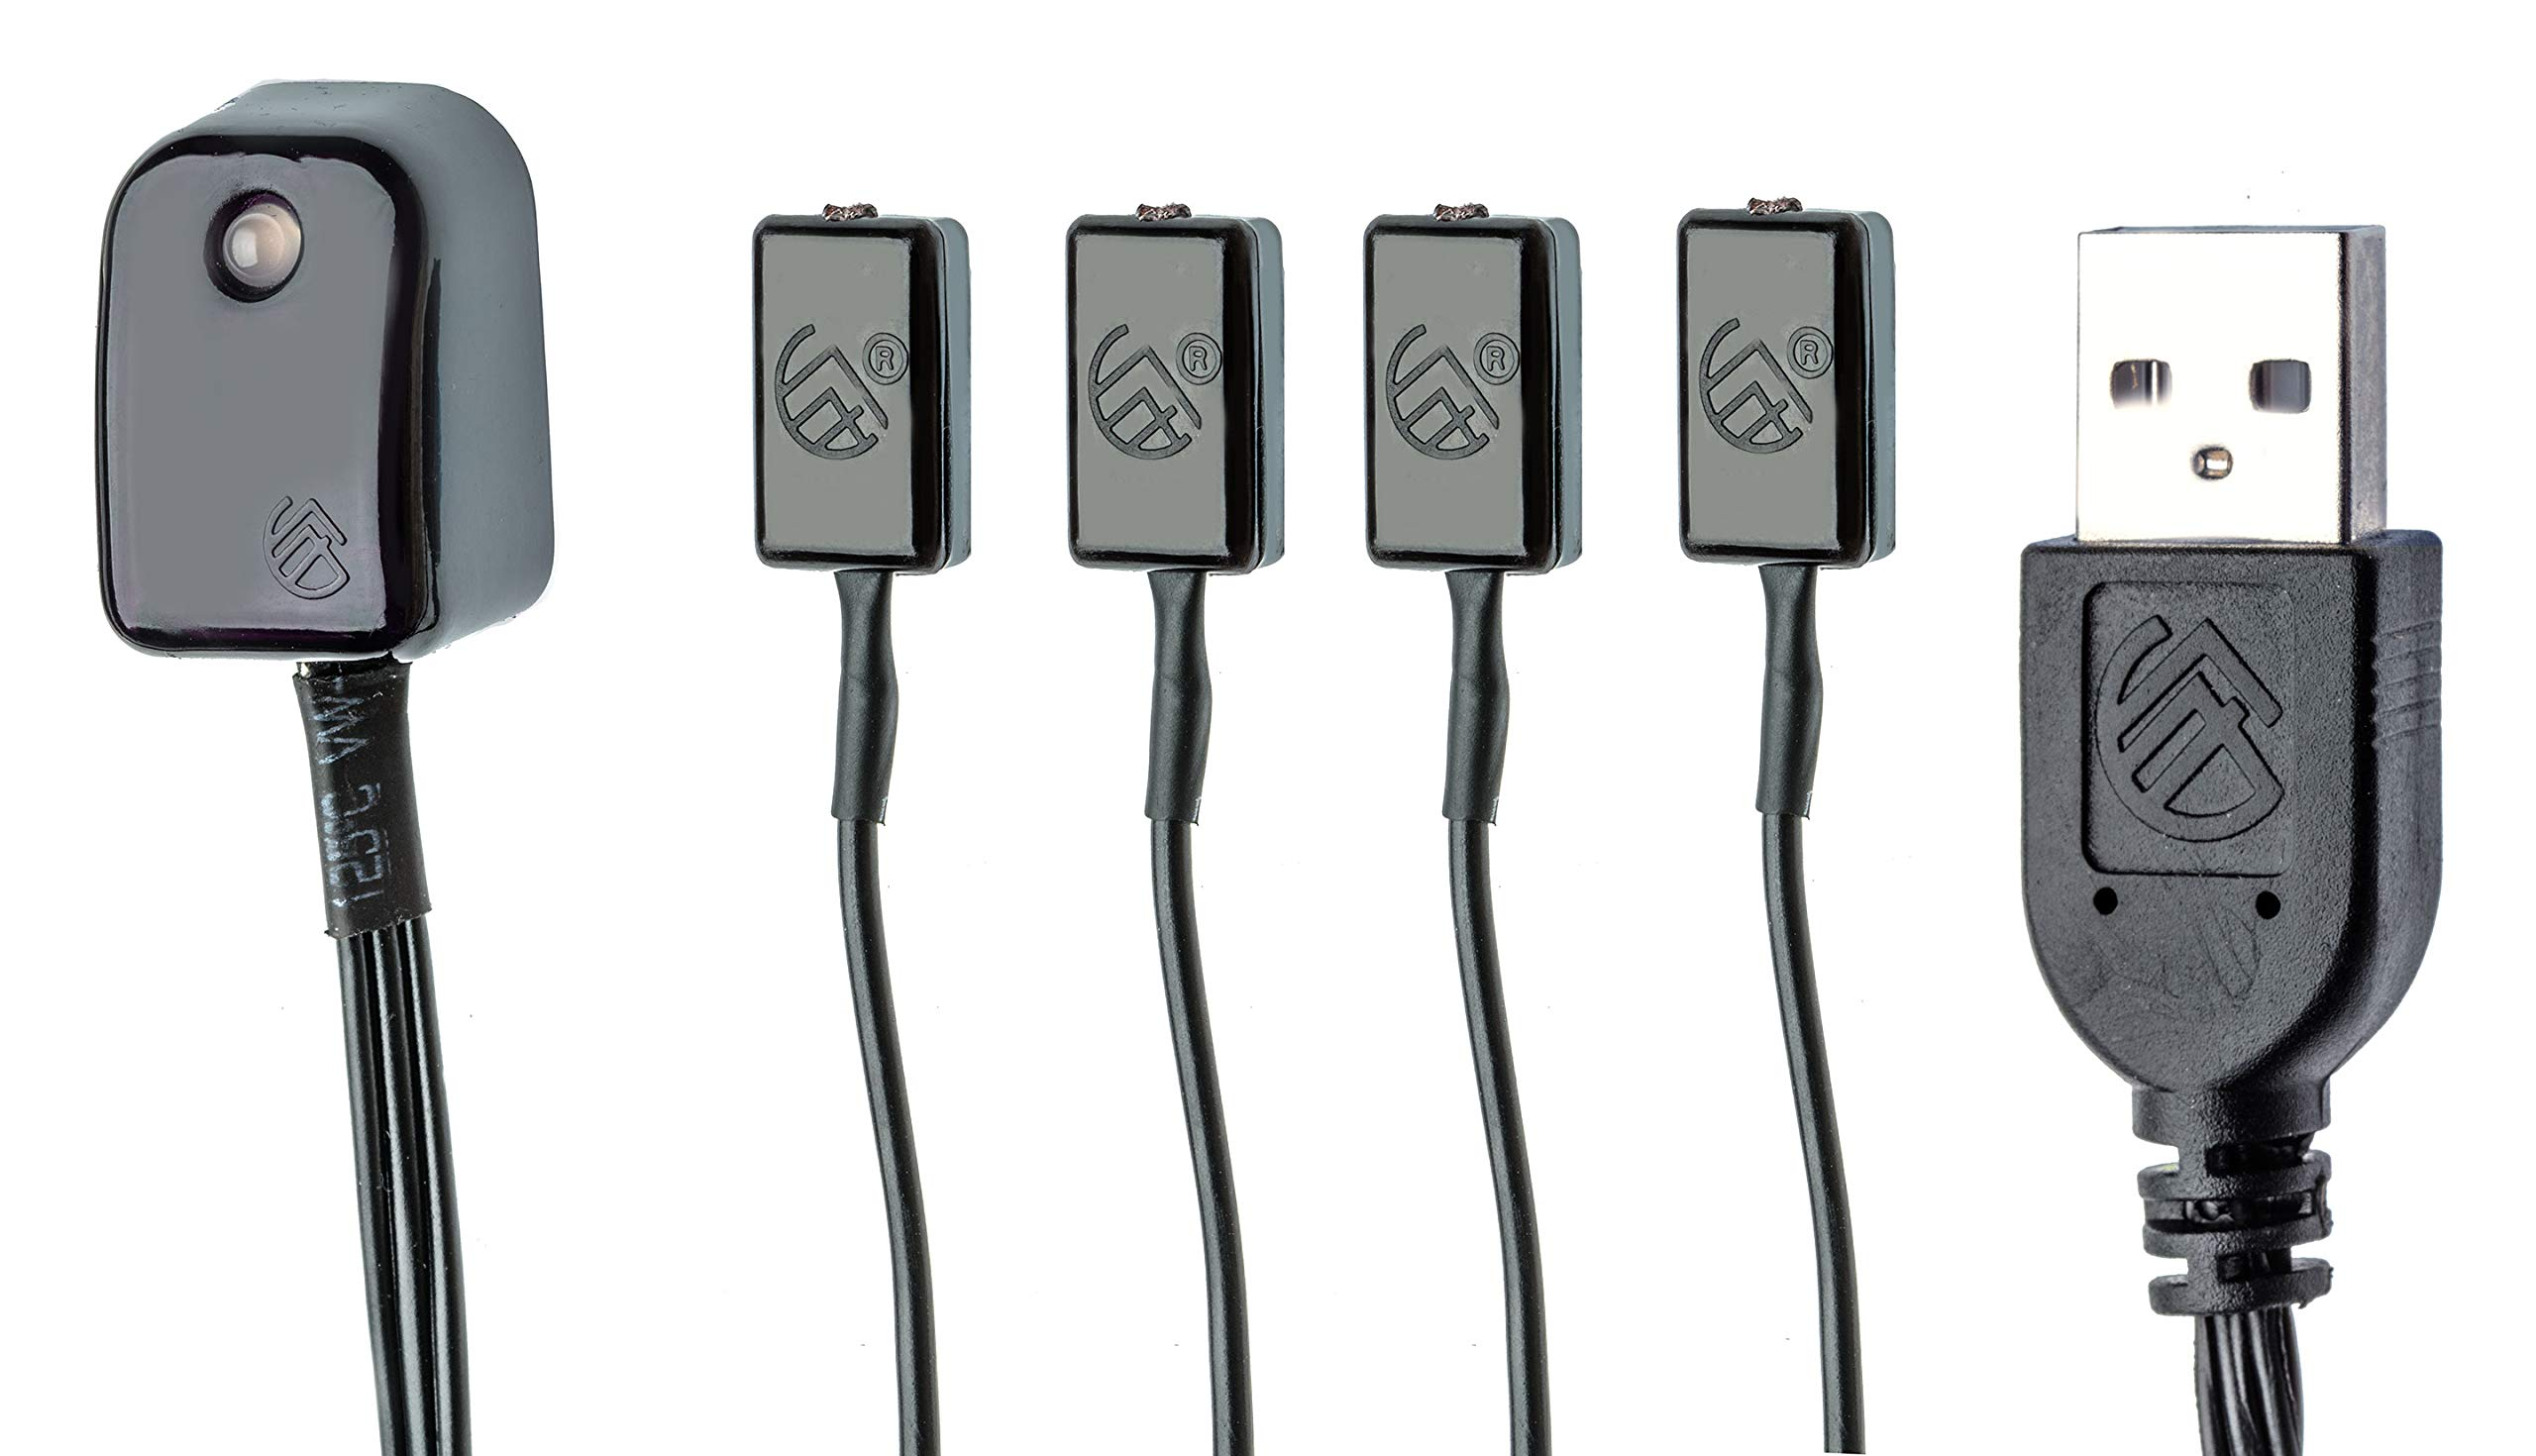 BAFX Products - All-in-One Infrared IR Repeater Kit/Remote Control Extender Cable / 1, 2 or 4 Device Control